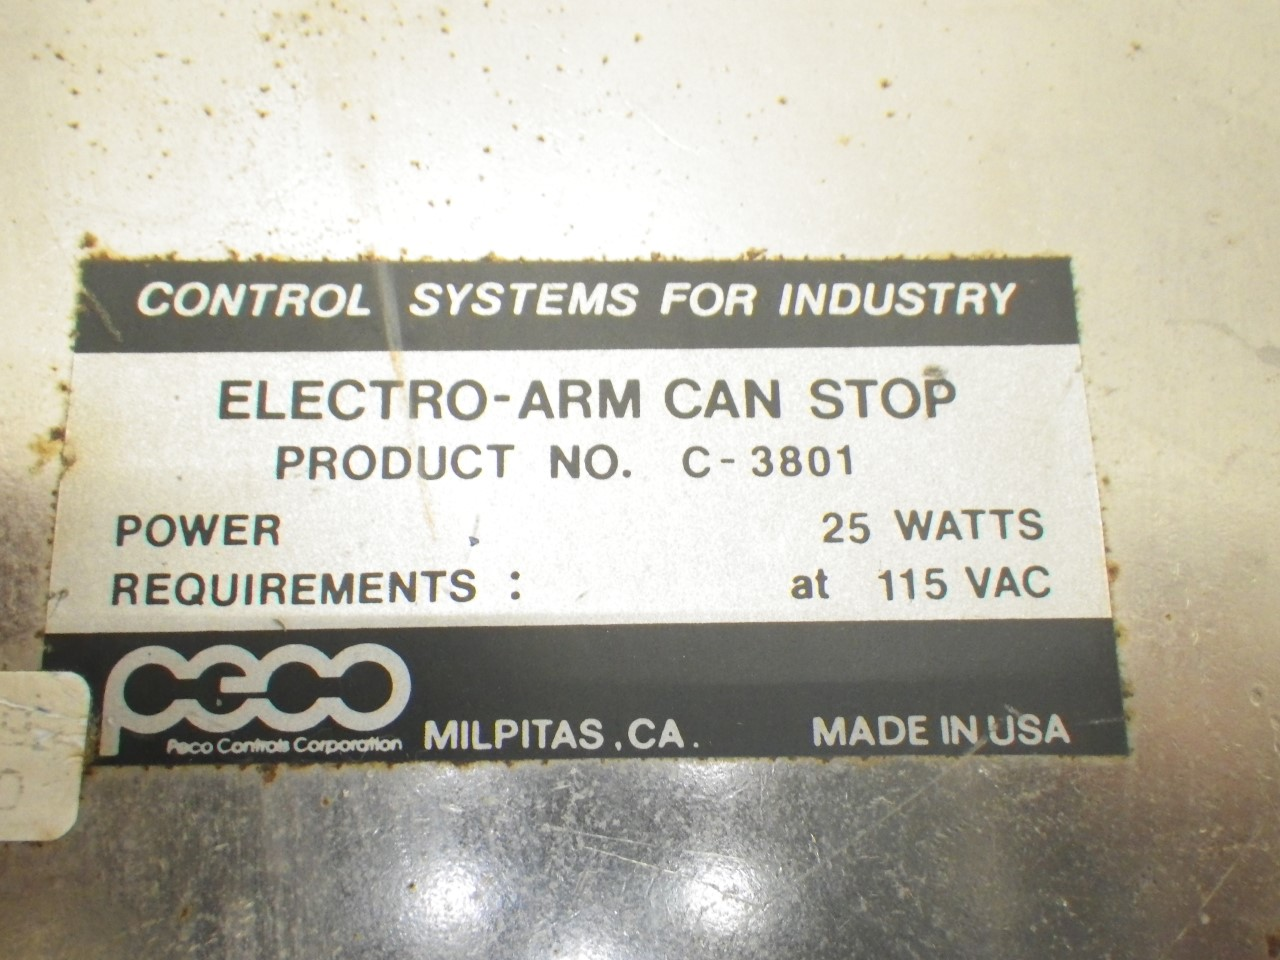 IMGP6937C-3801 C-3800A 3012Peco Electro-arm Controls forPackage Inspection(Used Tested) (8)